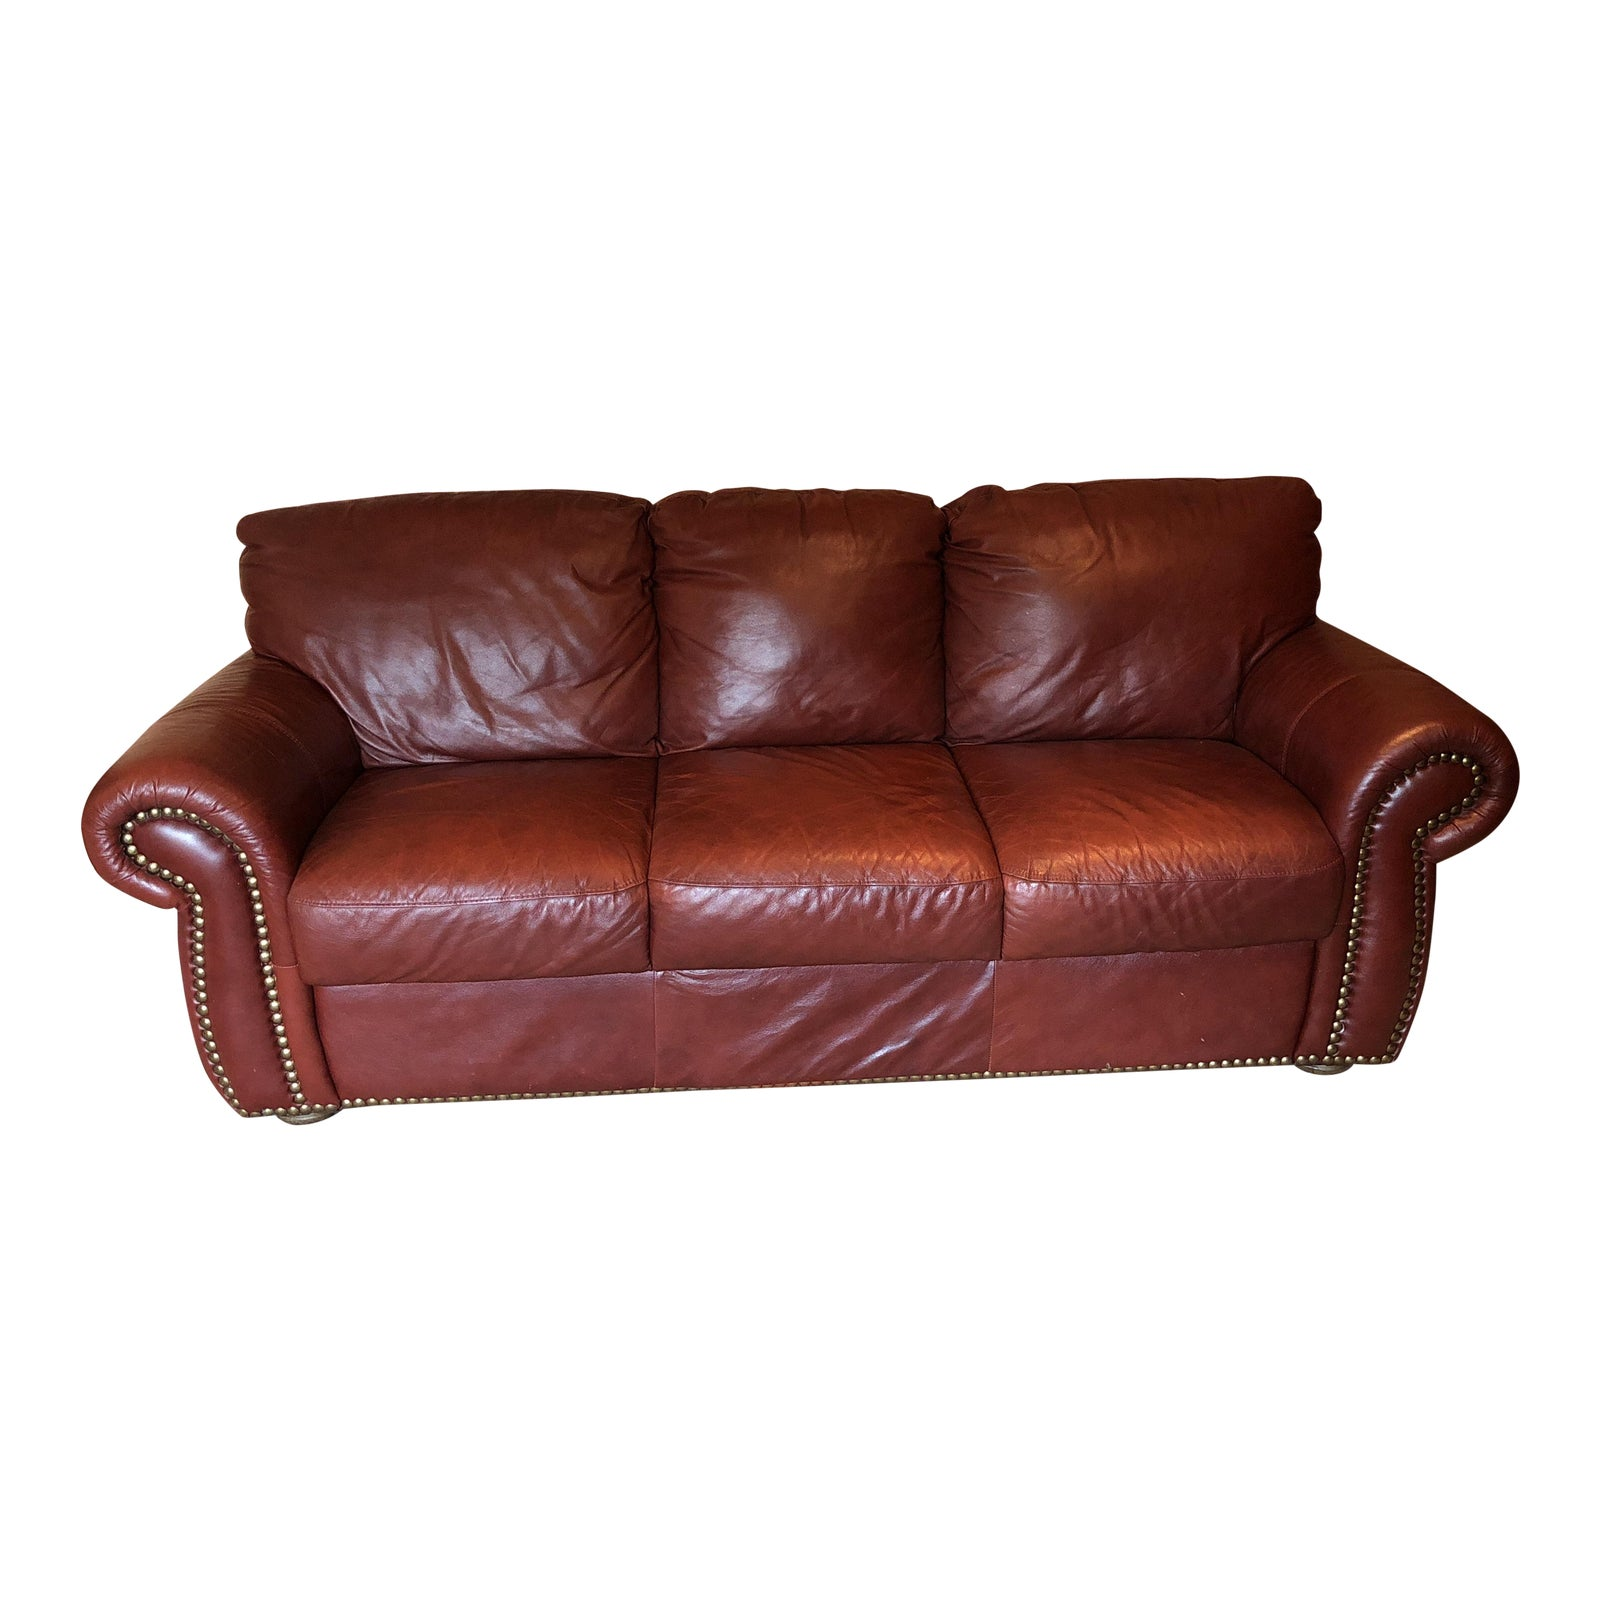 Divani Chateau D Ax.Chateau D Ax Divani Italian Red Leather Sofa Chairish